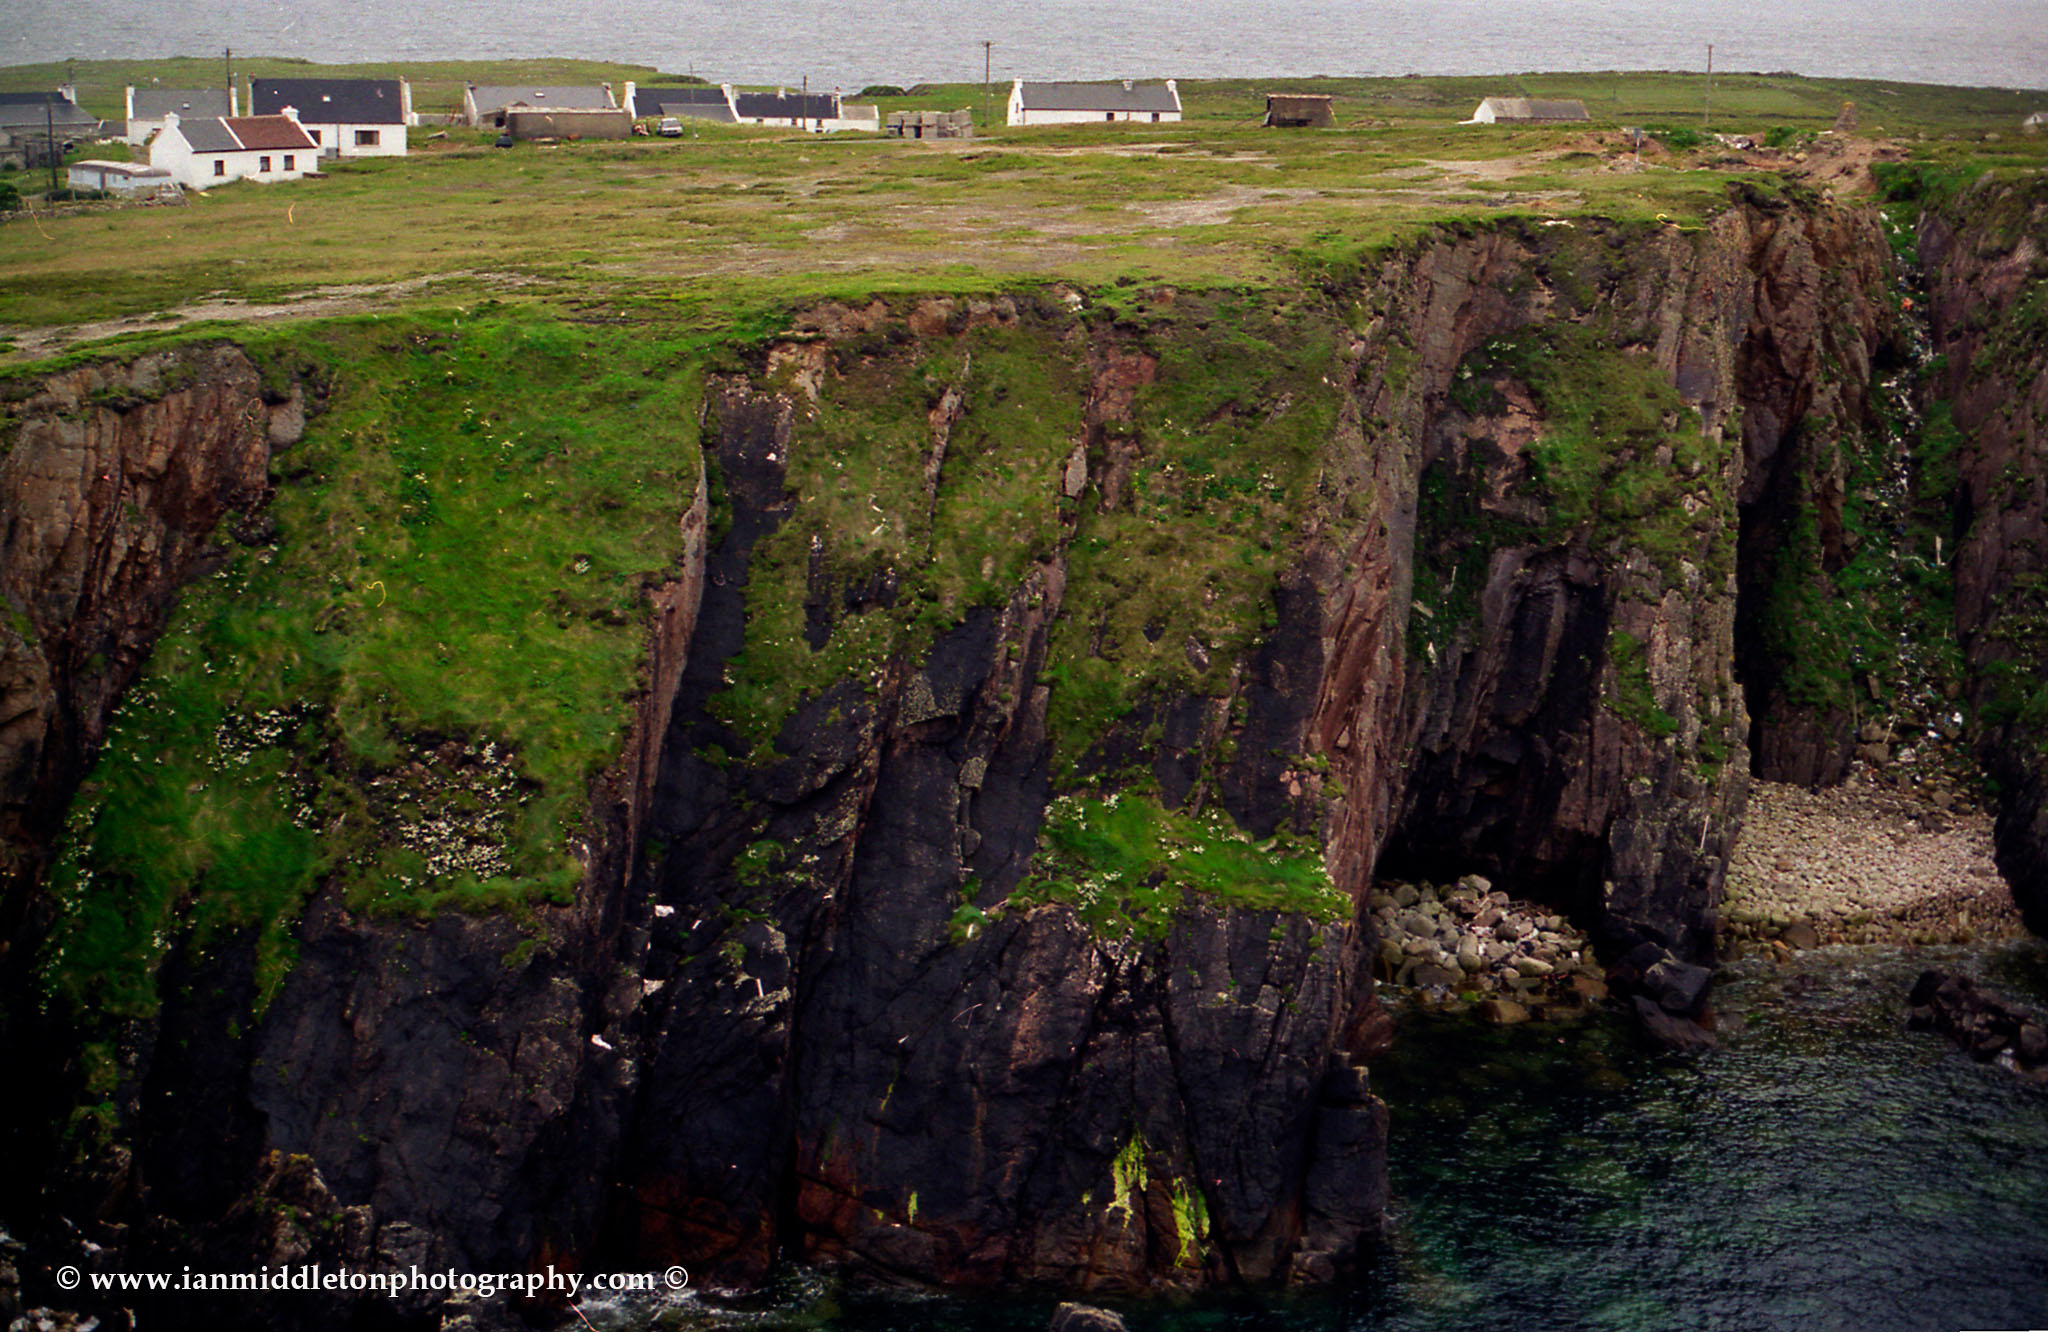 The soaring cliff of Eastern Tory Island, County Donegal, Ireland.